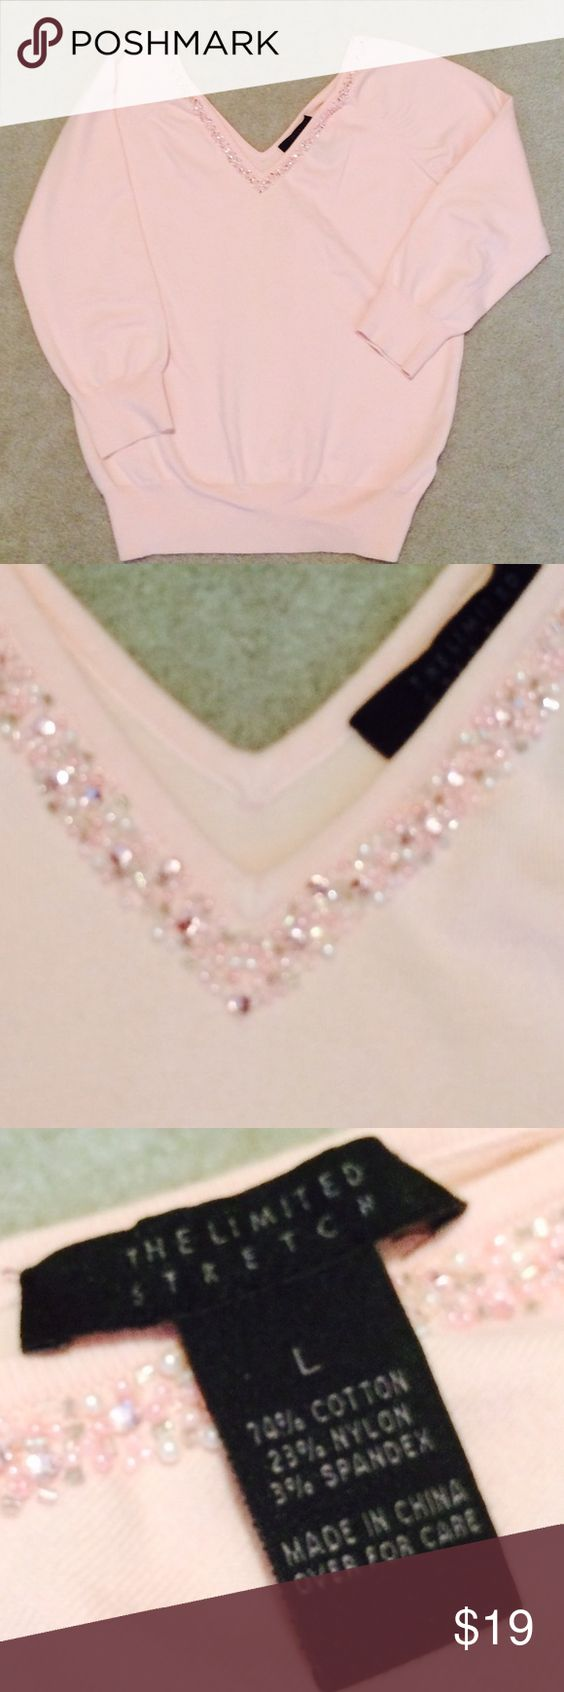 The Limited Pink Top The Limited Pink Knit Dress Top with Beading on the neckline. The Limited Tops